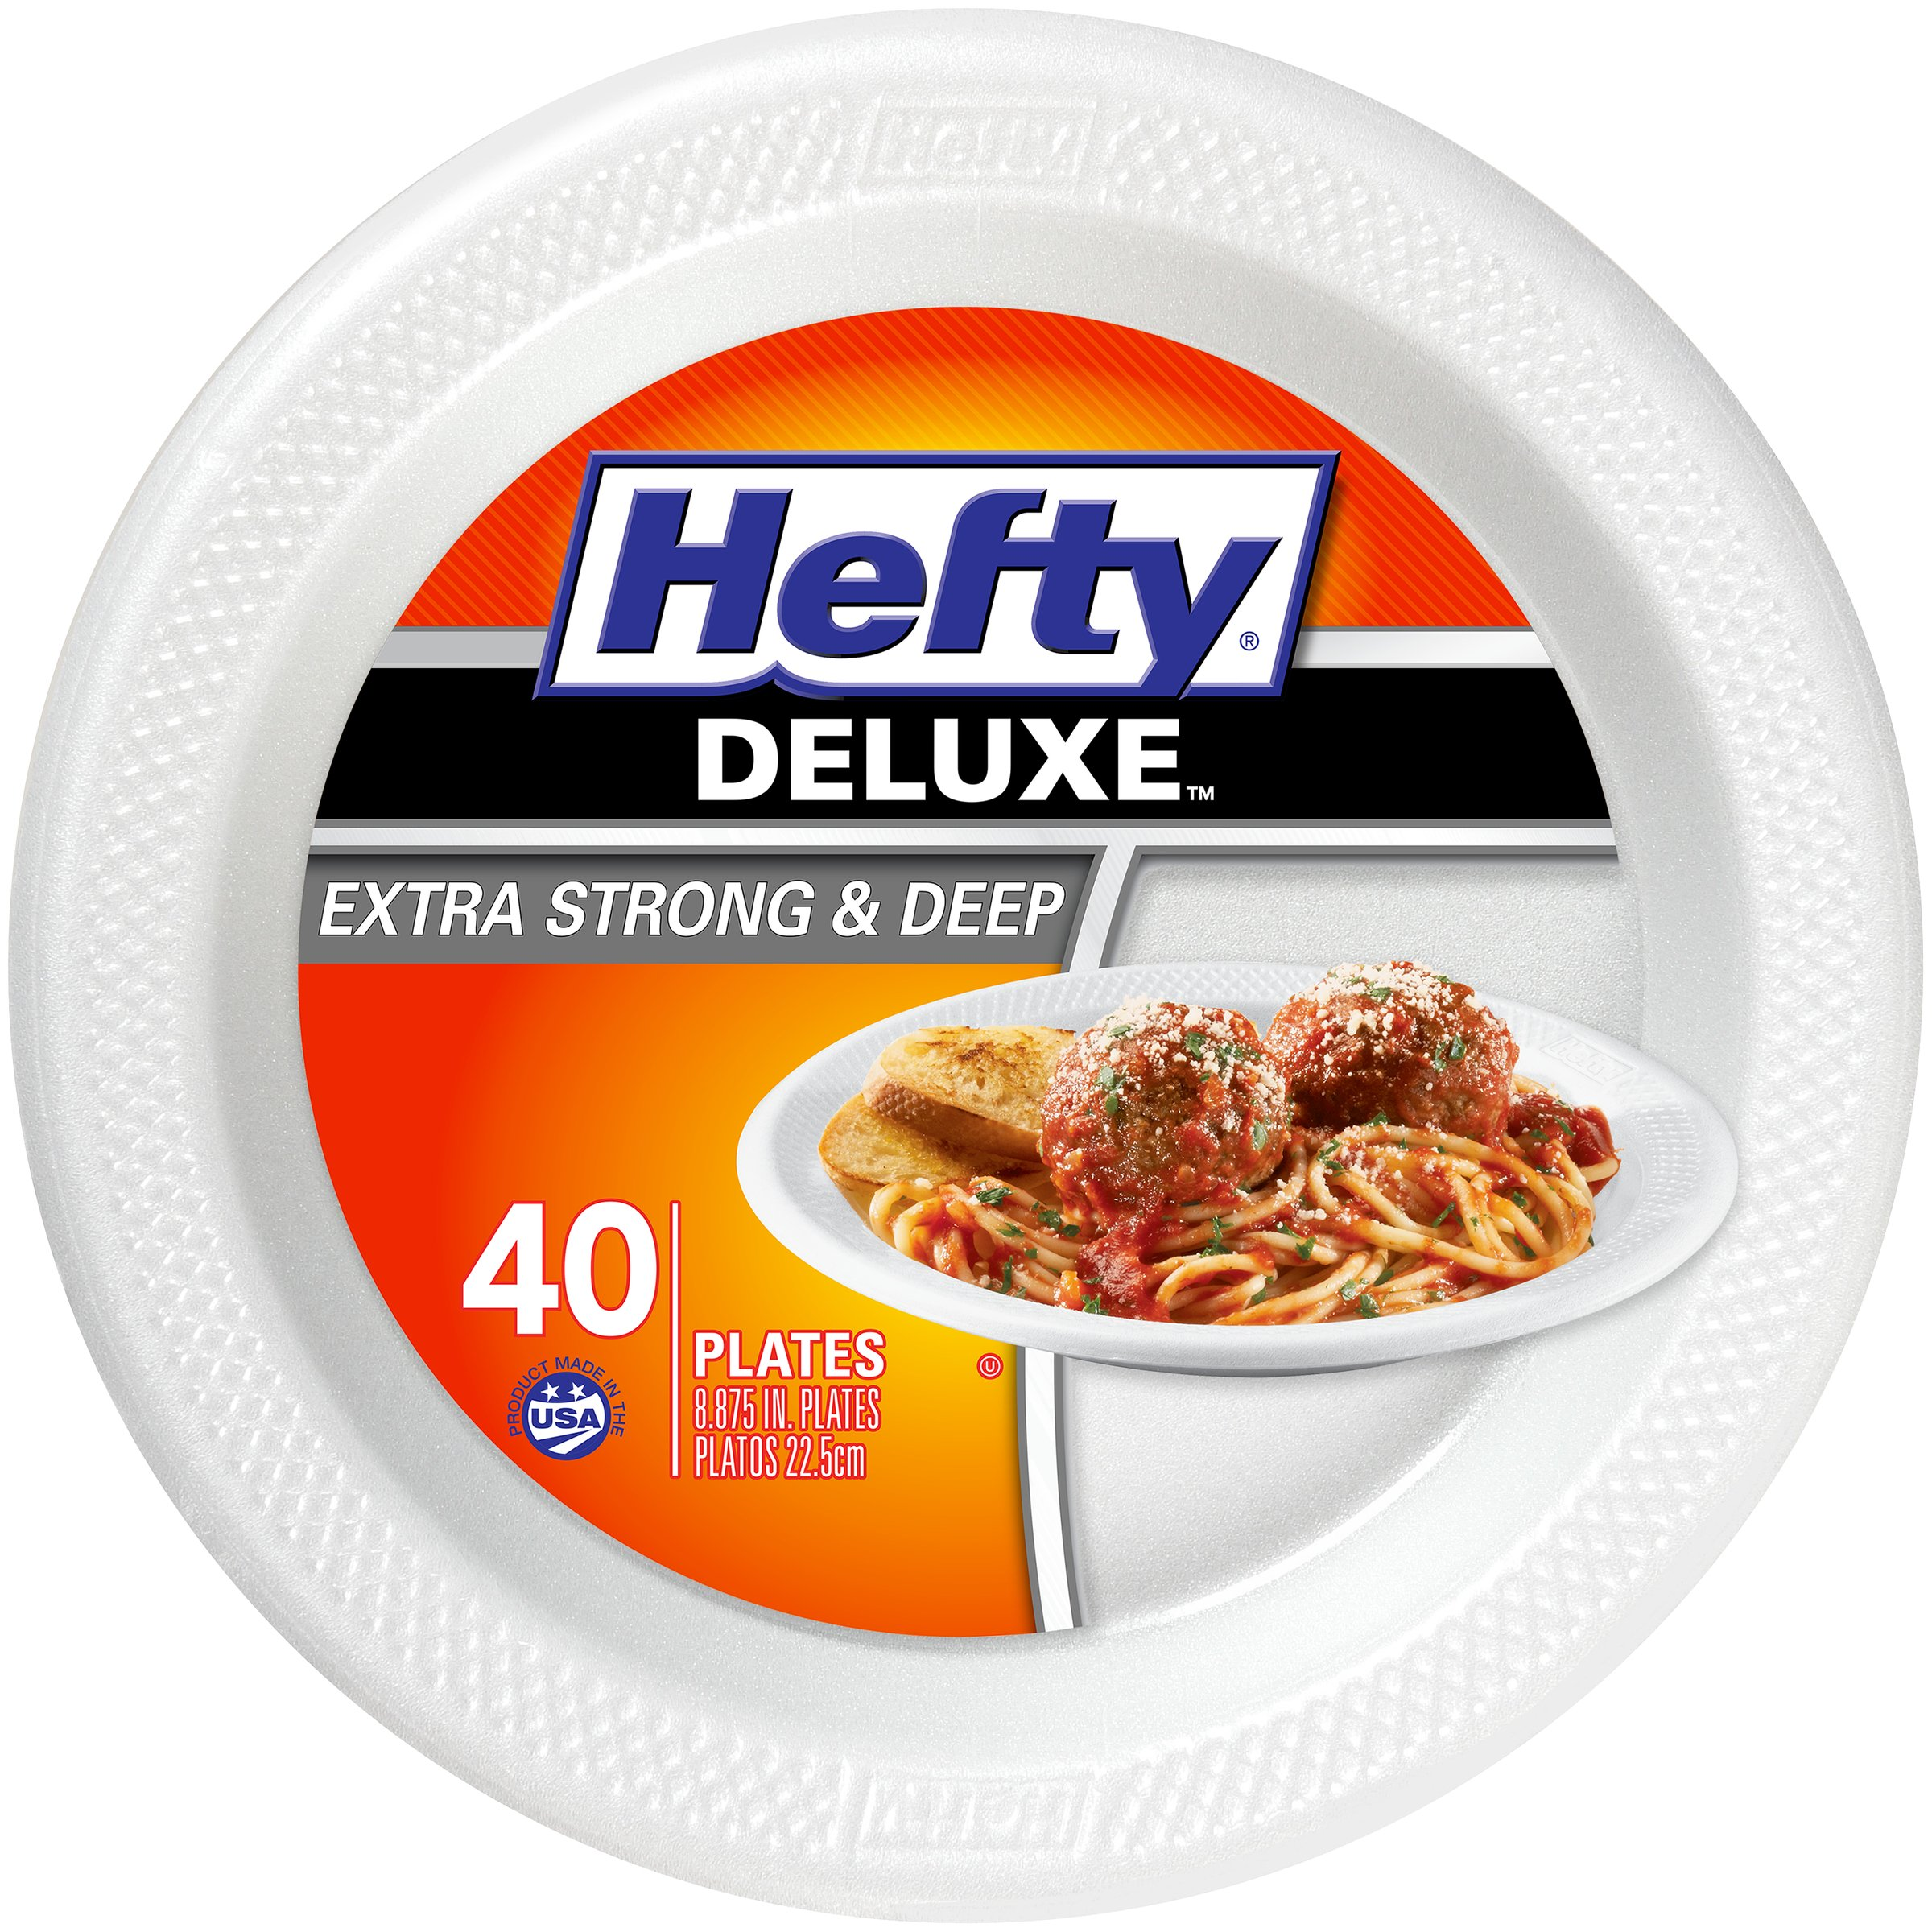 Hefty Deluxe Extra Strong And Deep 8.875 Inch Polypropylene Plates - Shop Disposable Tableware at HEB  sc 1 st  HEB.com & Hefty Deluxe Extra Strong And Deep 8.875 Inch Polypropylene Plates ...